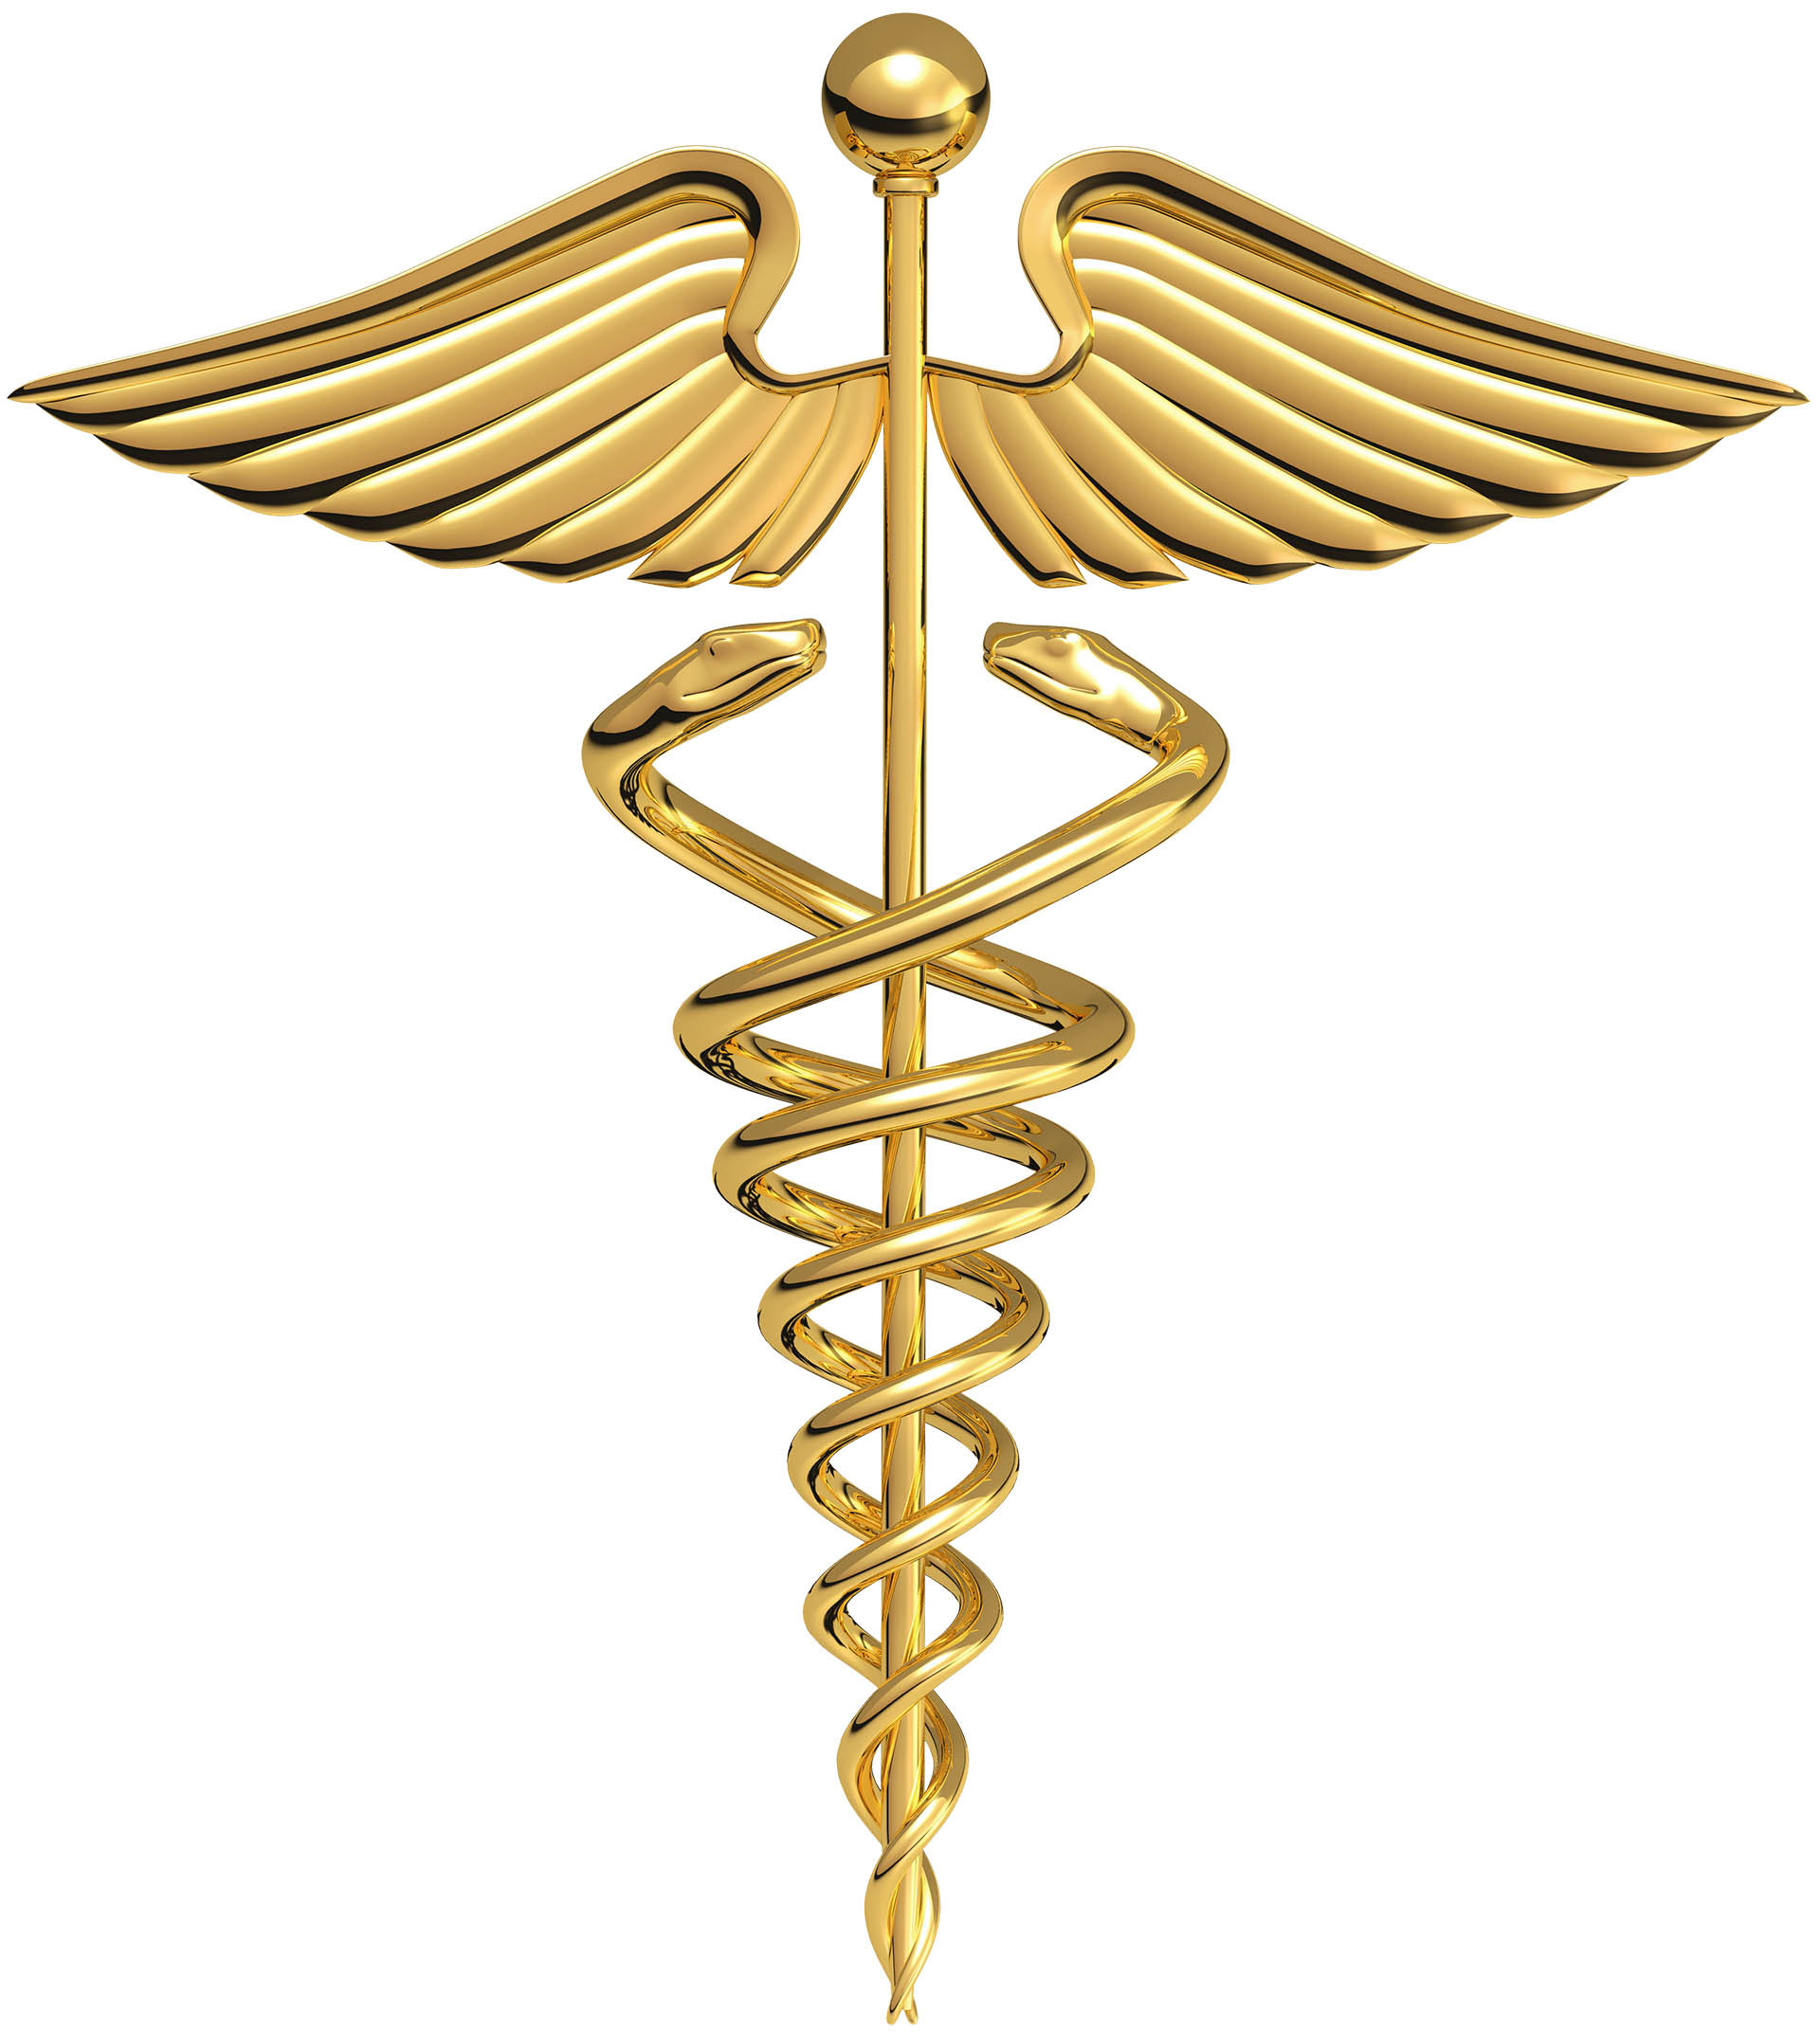 Caduceus - HEALTH - Messenger of the gods - COMPASSION - MERCY - BENEVOLENCE - BE HUMANE - BE KIND - BE GENTLE - DO NO HARM - FEAR NOT - BE NOT AFRAID - CAUSE NO PAIN - BE AS PAINLESS AS POSSIBLE - CAUSE NO FEAR - DO NOT BE SCARY - USE BIRTH CONTROL - PERMIT DIVORCE - DO NOT PUNISH